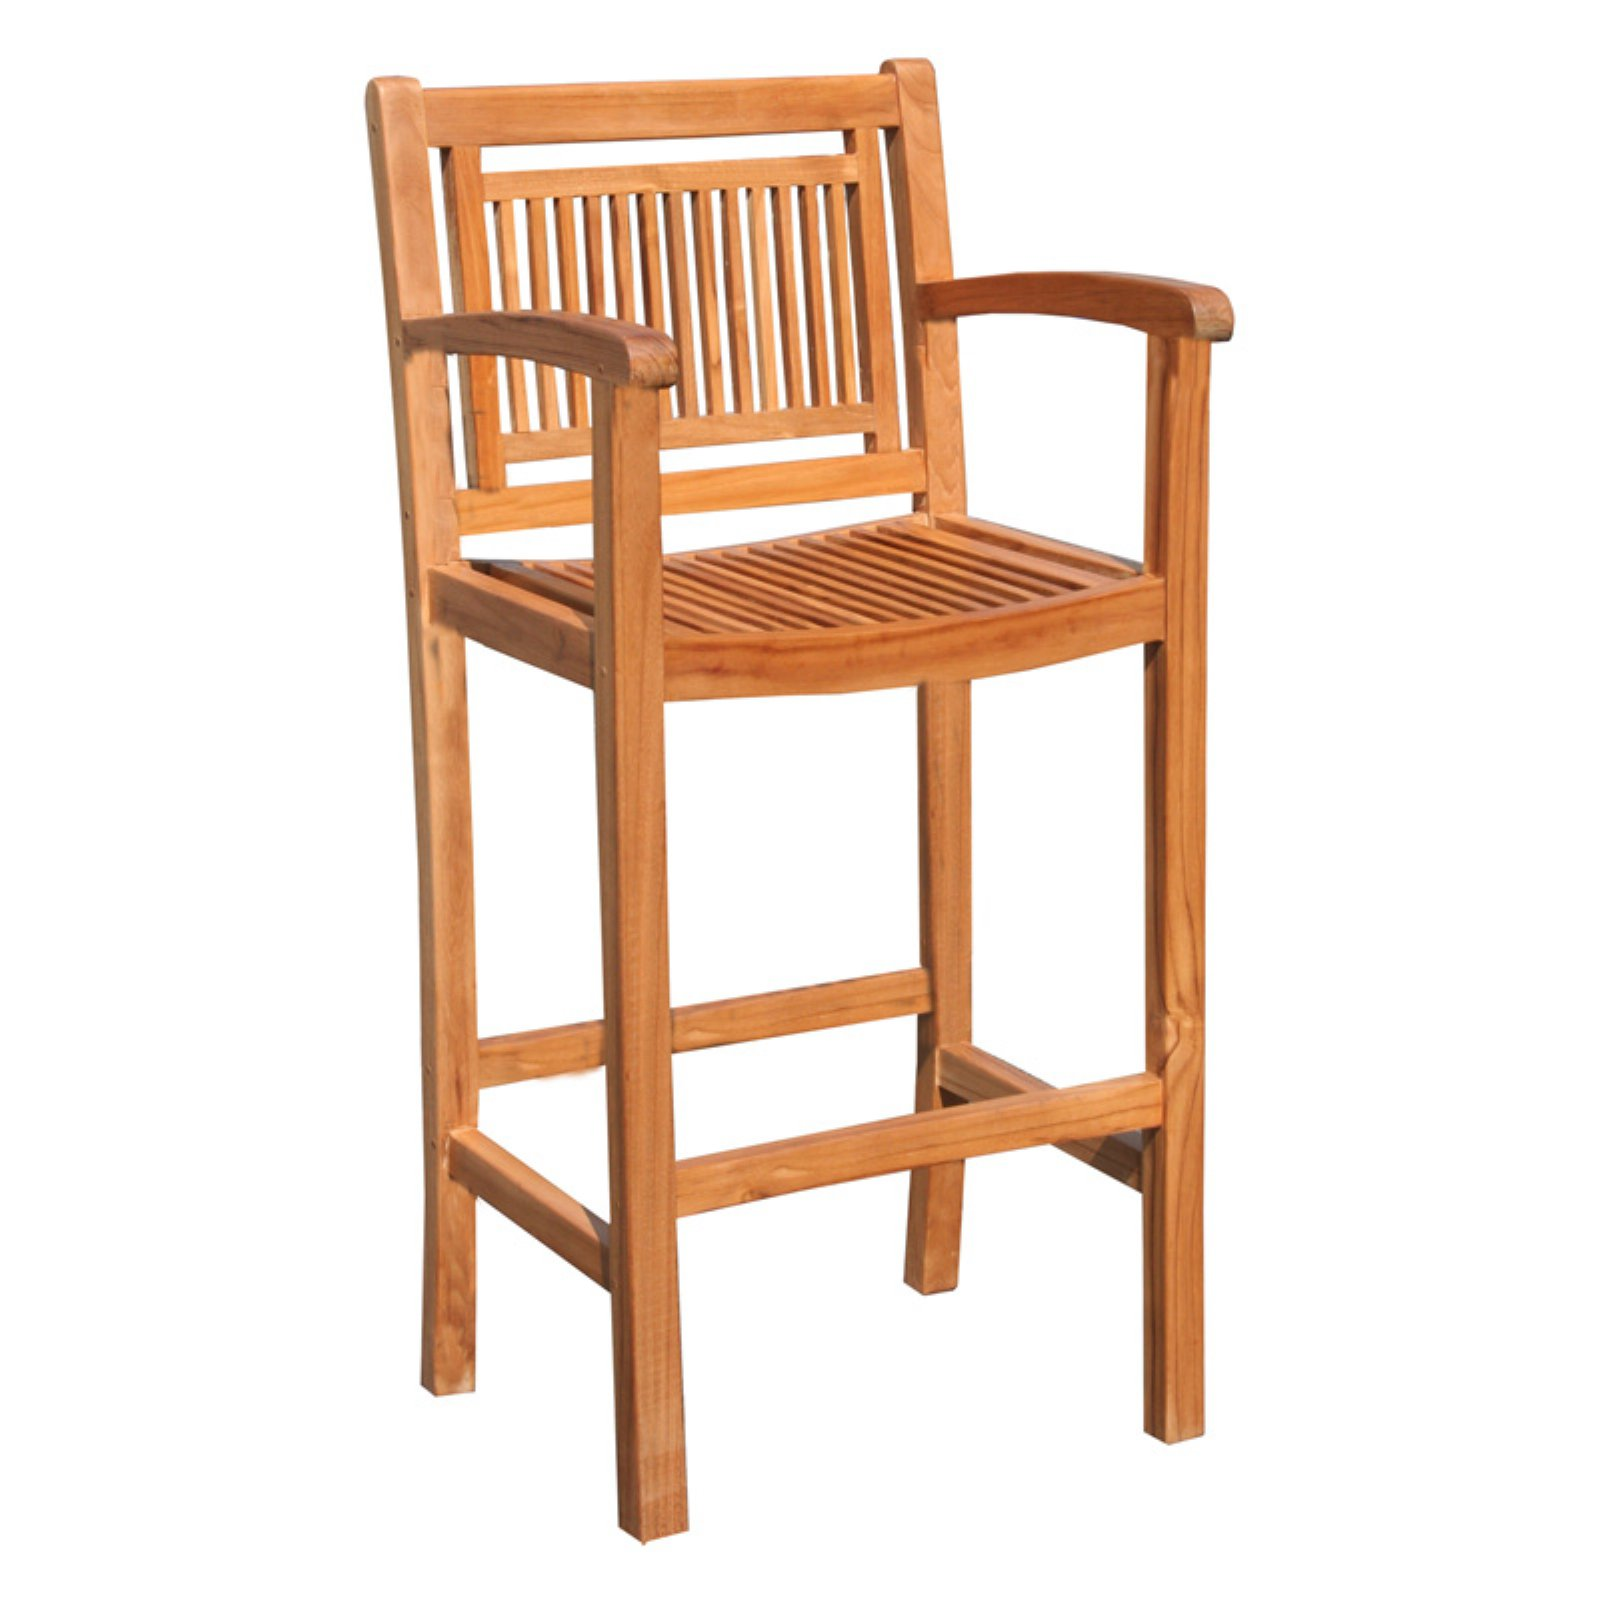 Chic Teak Maldives Teak Outdoor Barstool with Arms